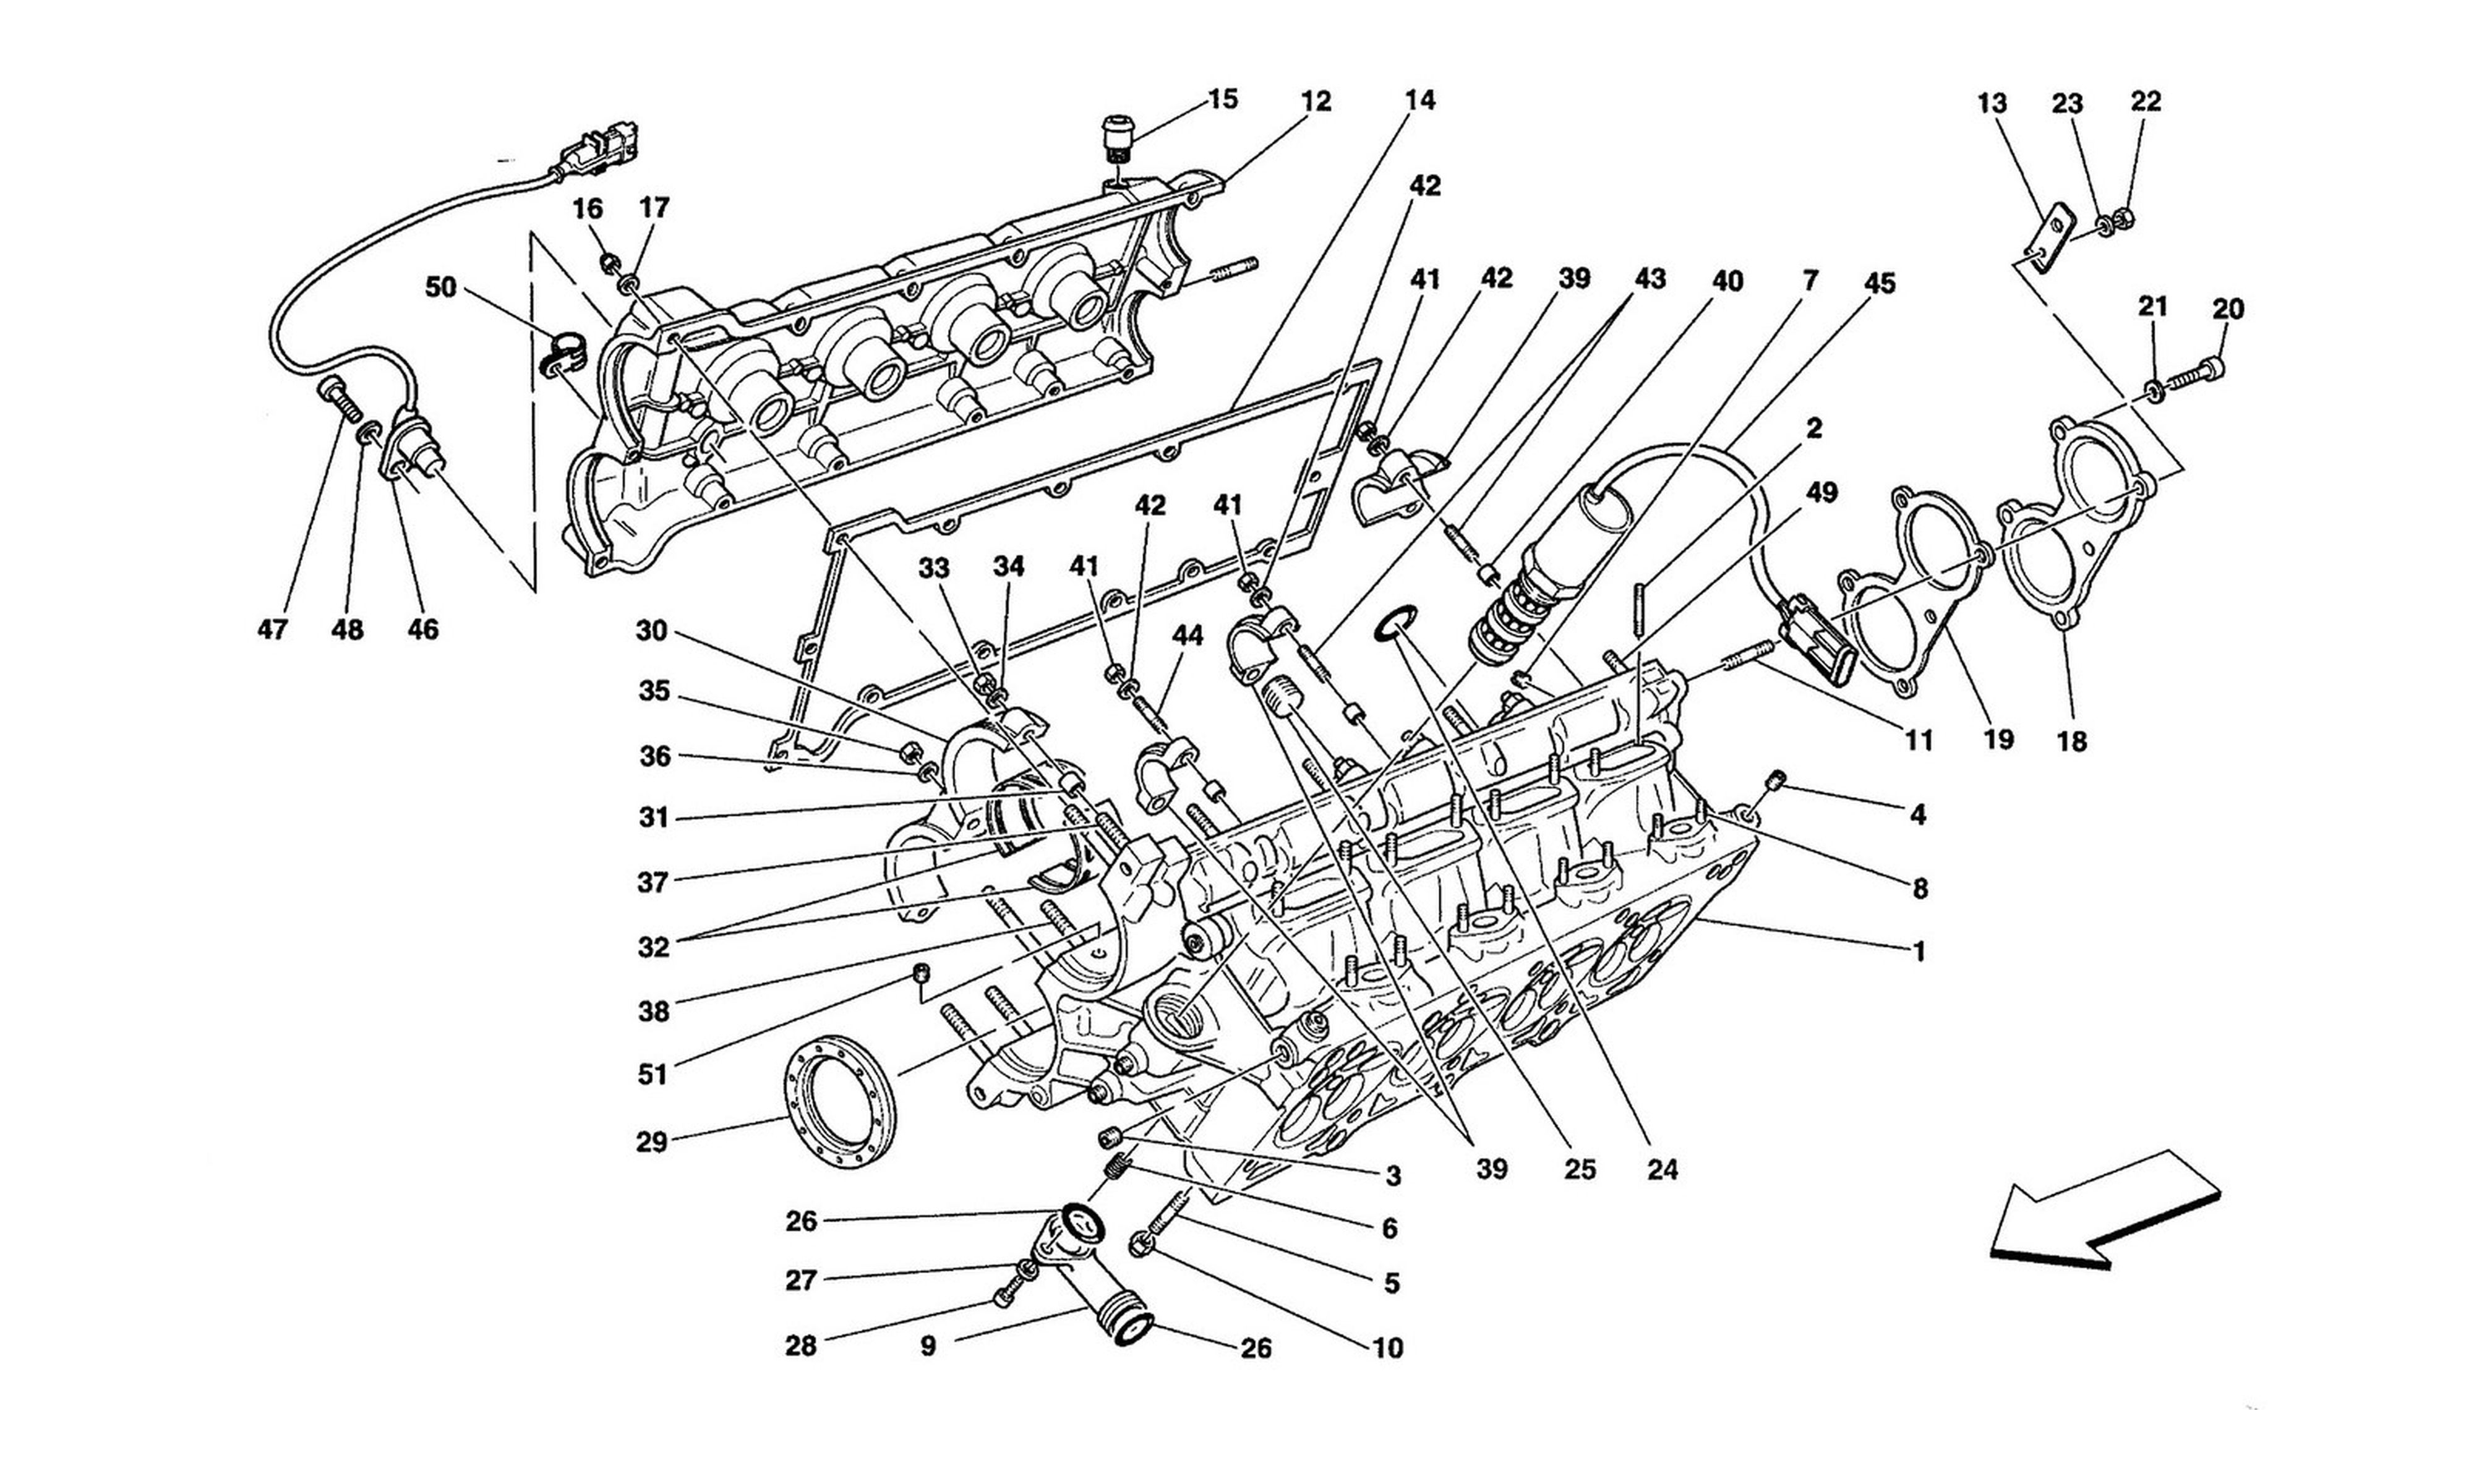 Table 3 - R.H. Cylinder Head